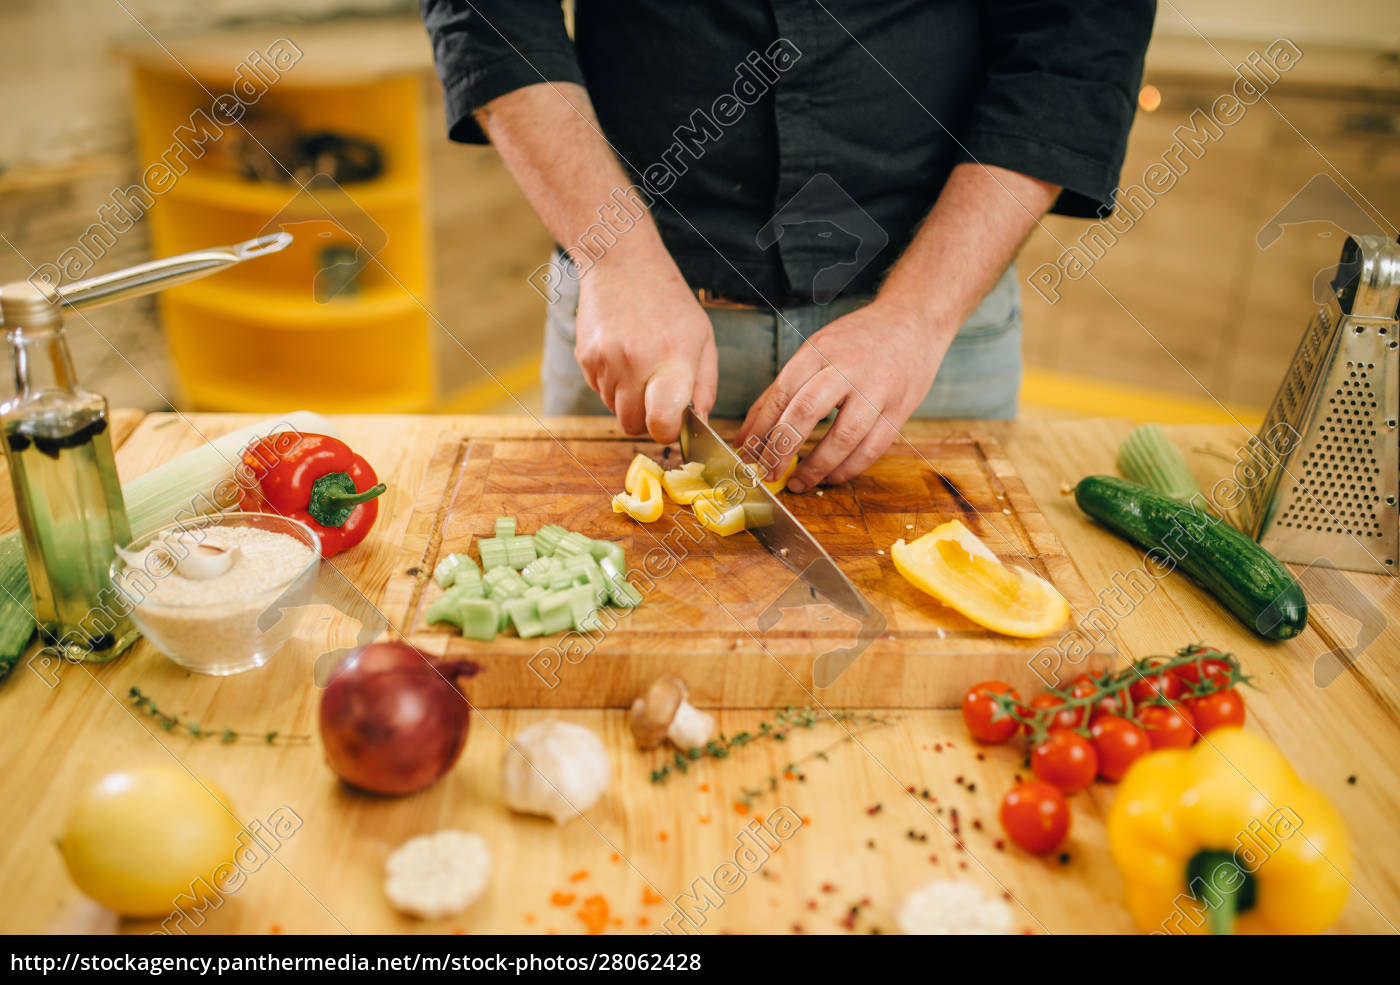 chef, hands, with, knife, cuts, yellow - 28062428